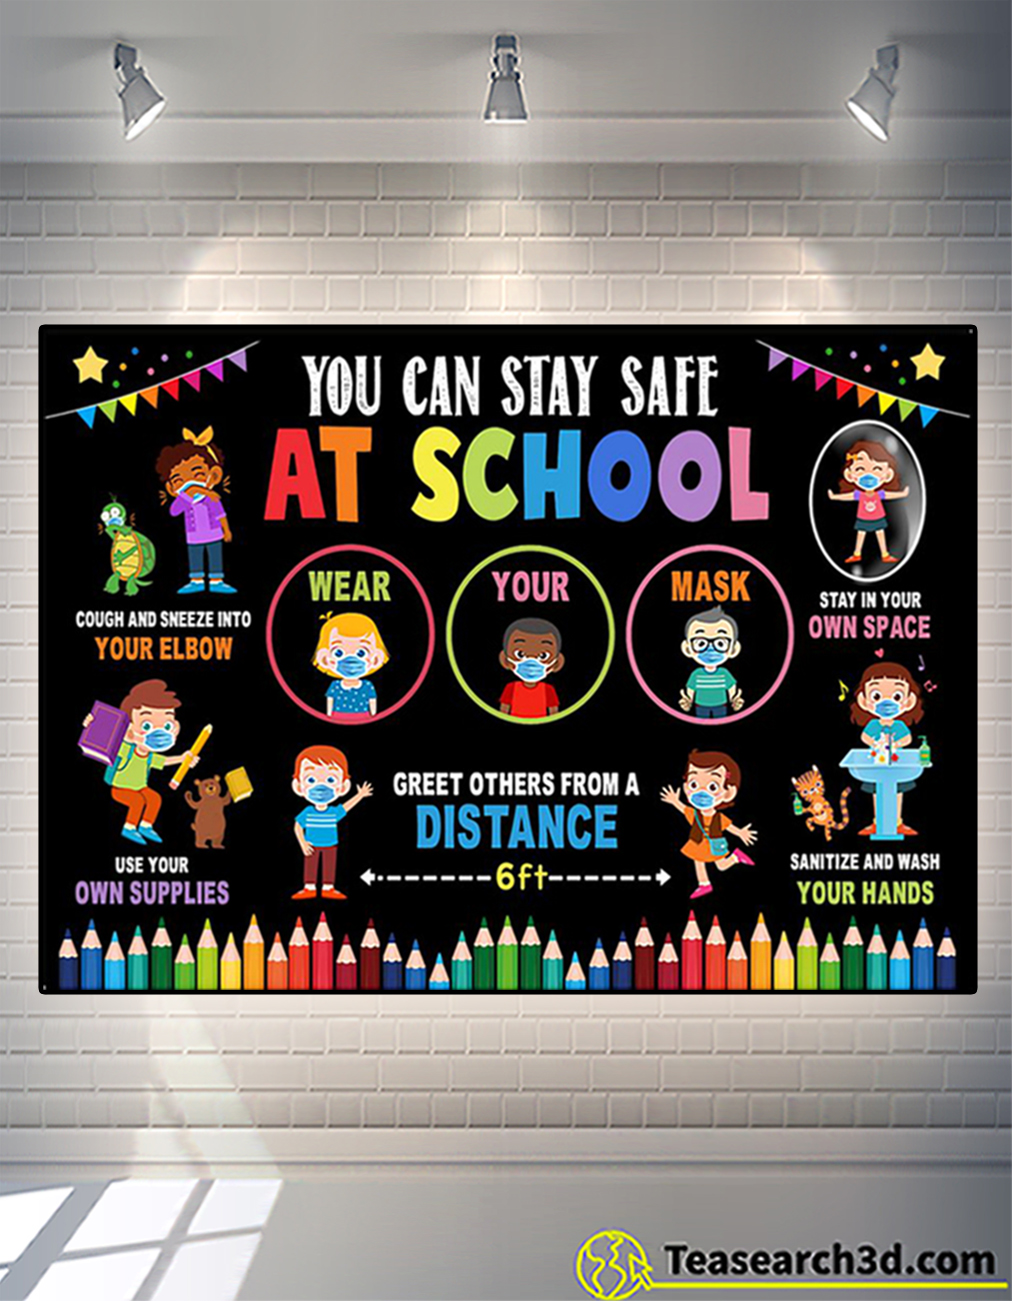 You can stay safe at school poster